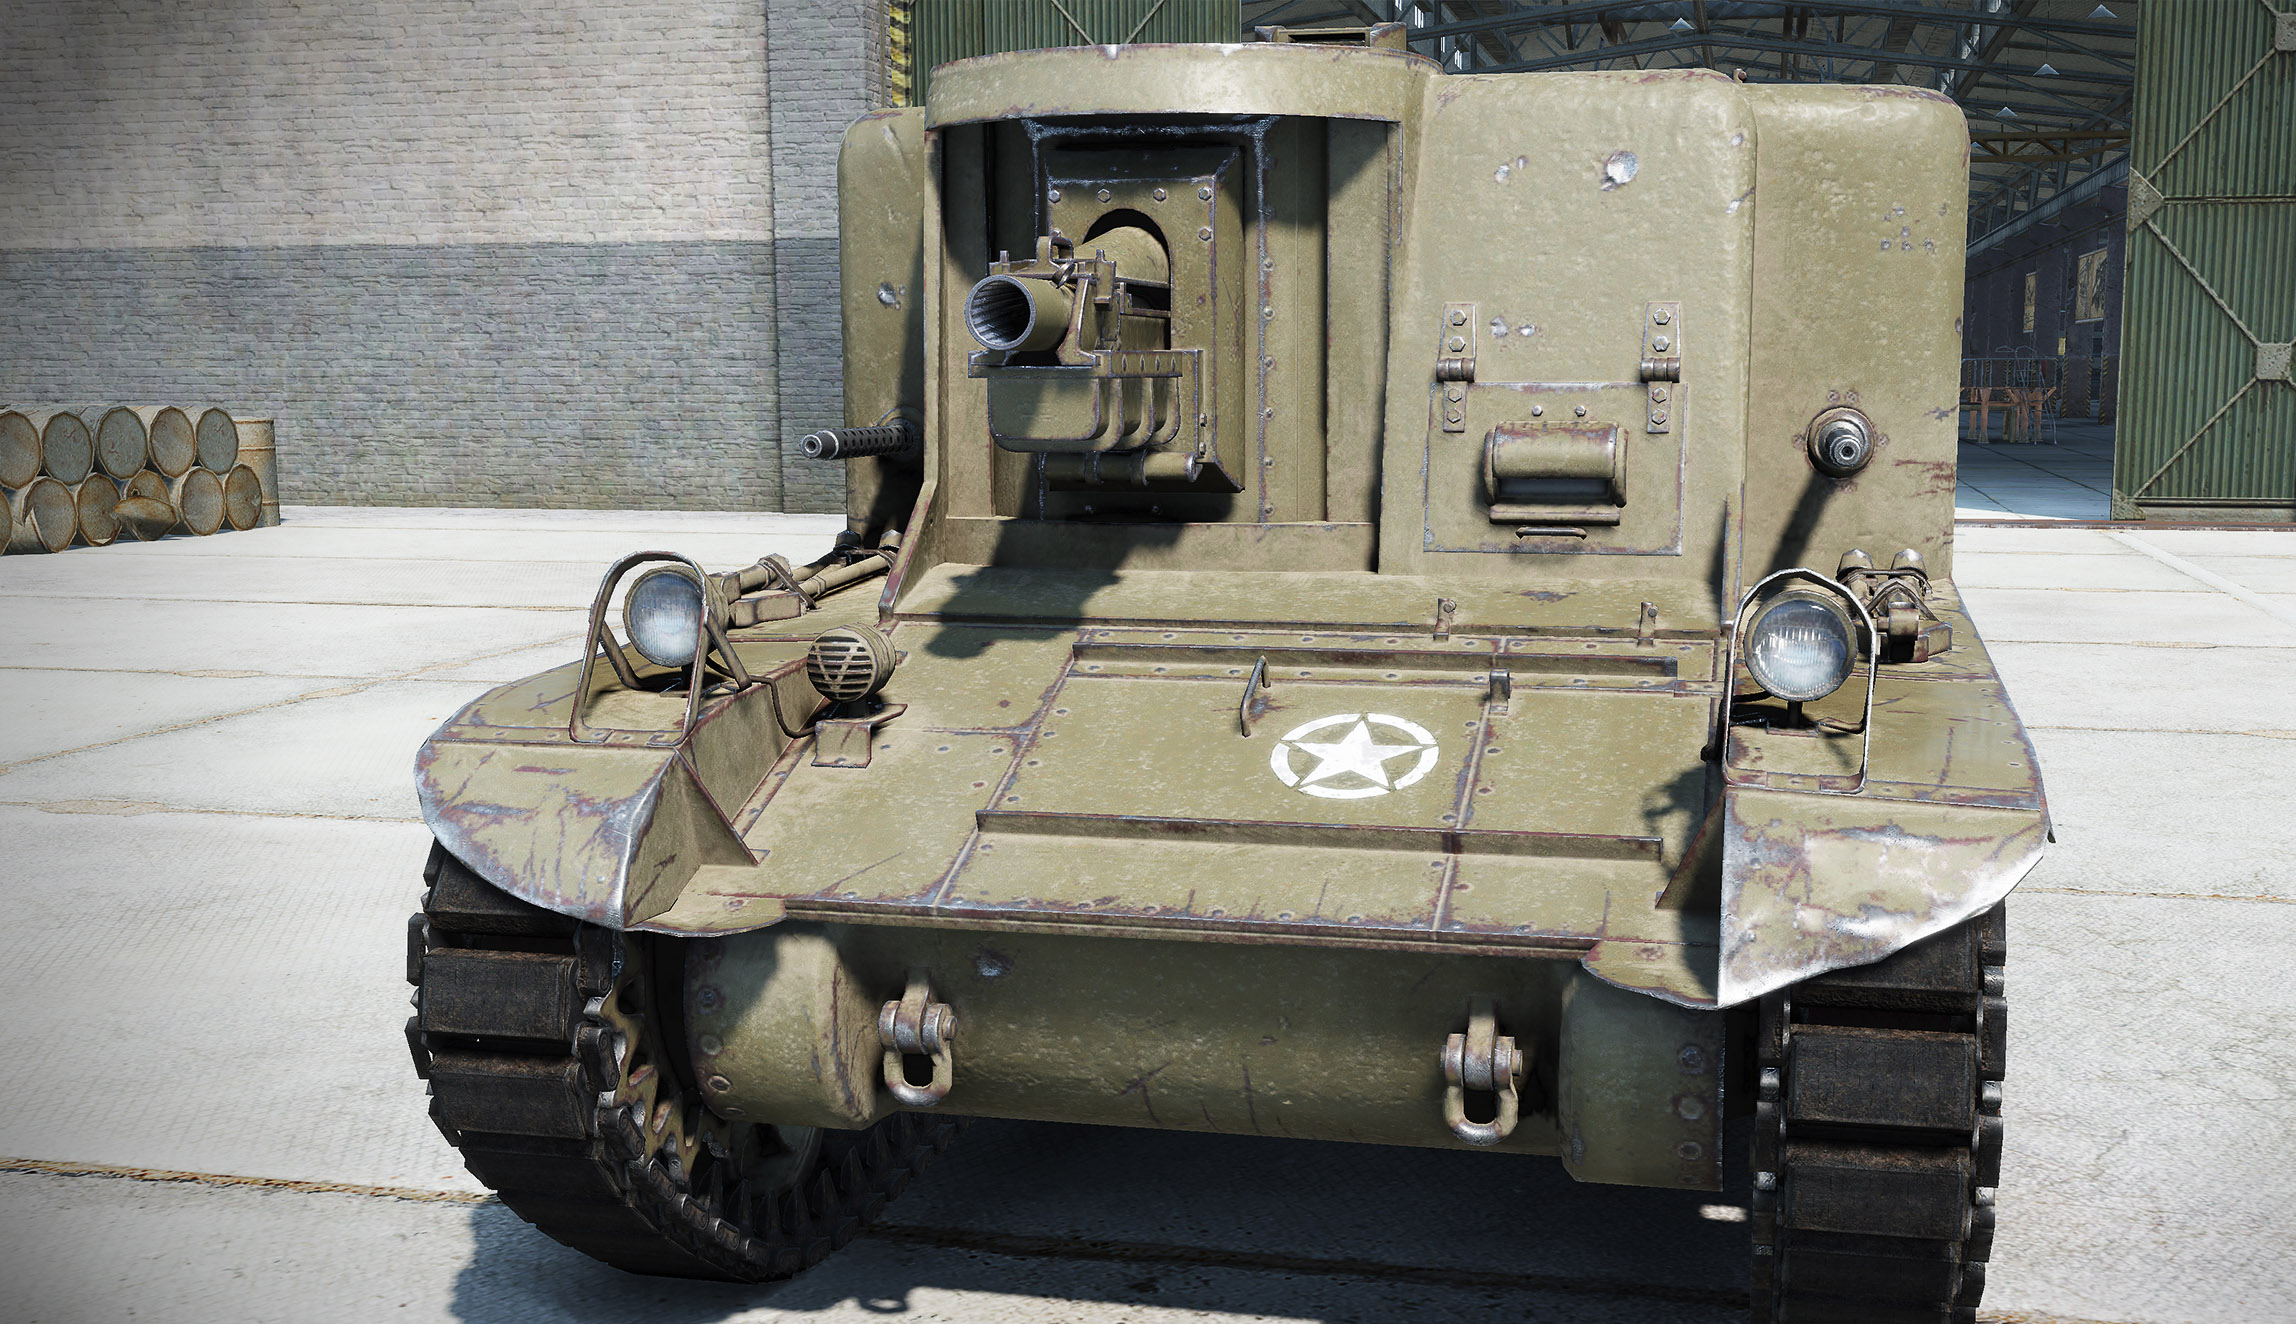 While this is an image of the T18 HMC, it's the closest thing you can get to seeing what the fabled T18 used to look like. We would love to see the T18 one more time in World of Tanks.